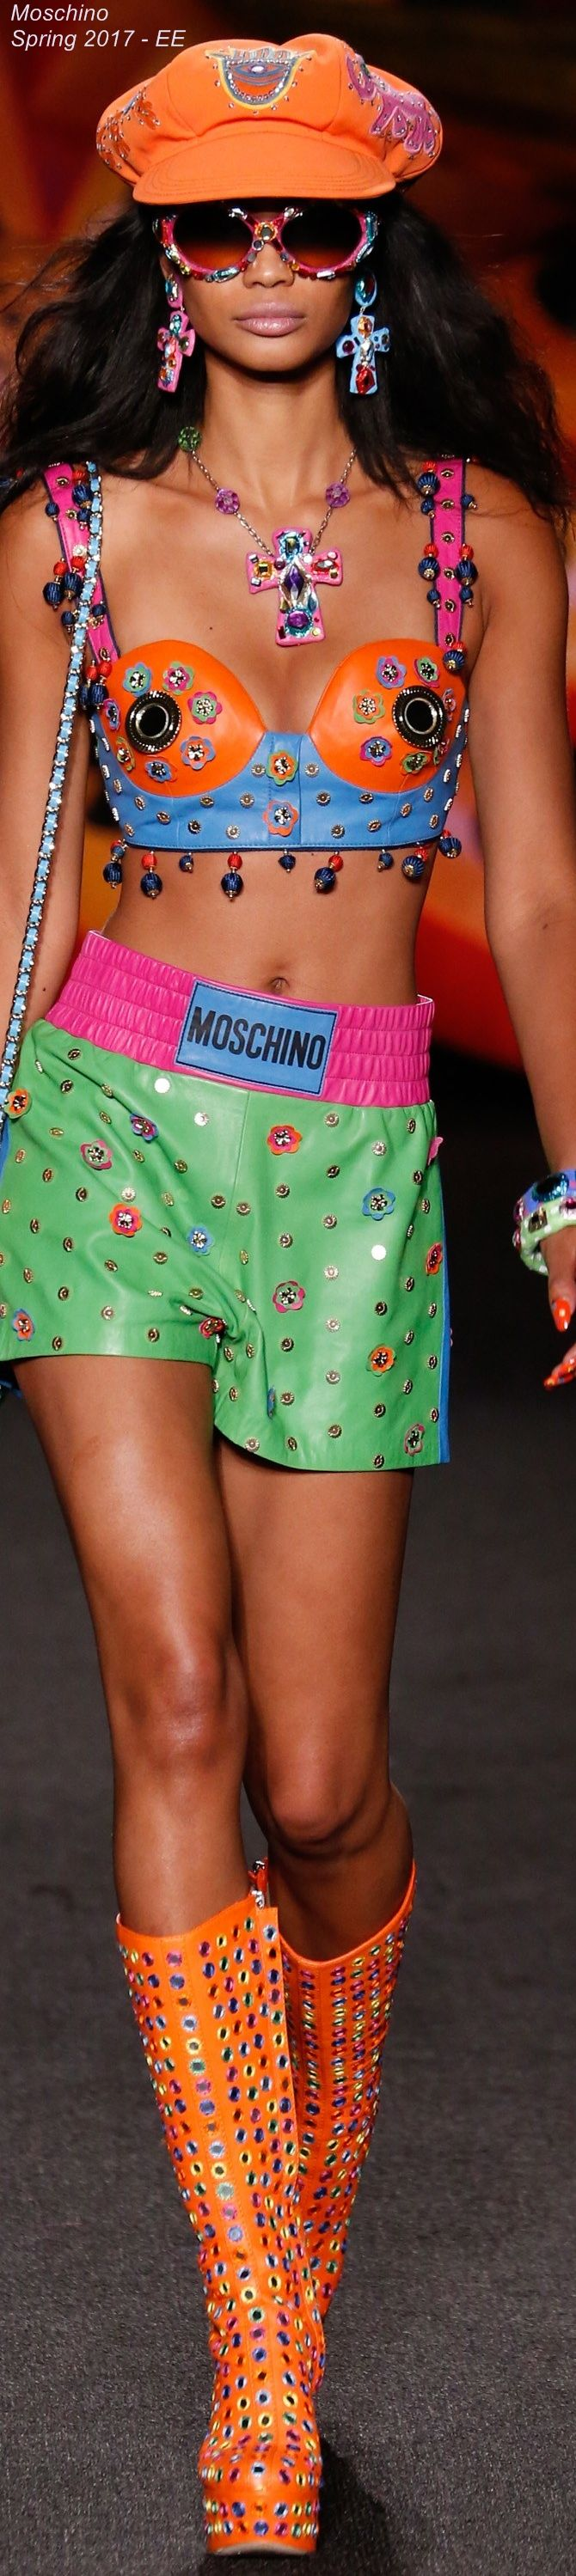 Spring 2017 Menswear Moschino - EE